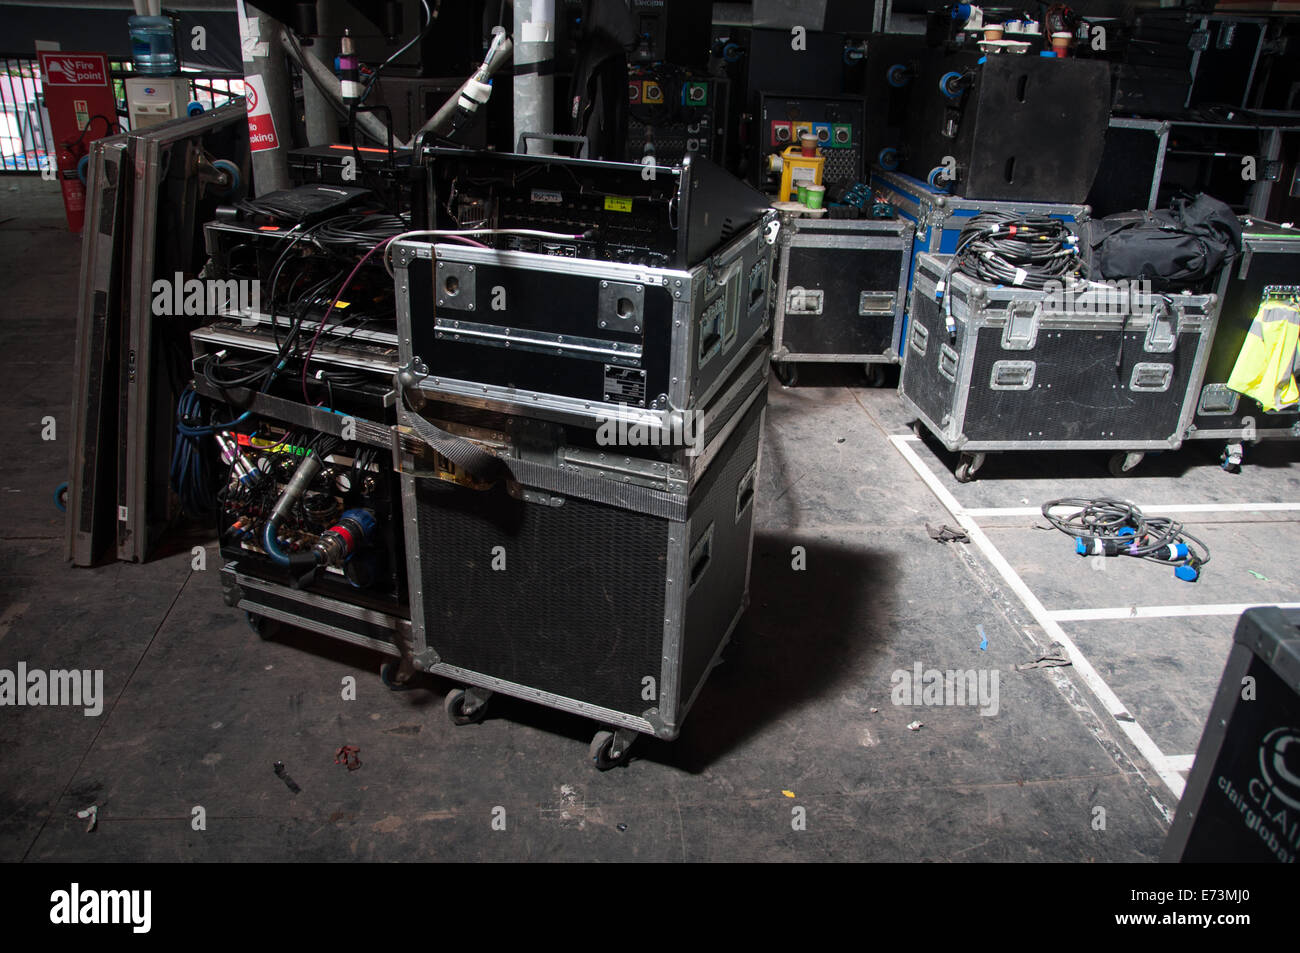 Backstage music equipment boxes - Stock Image